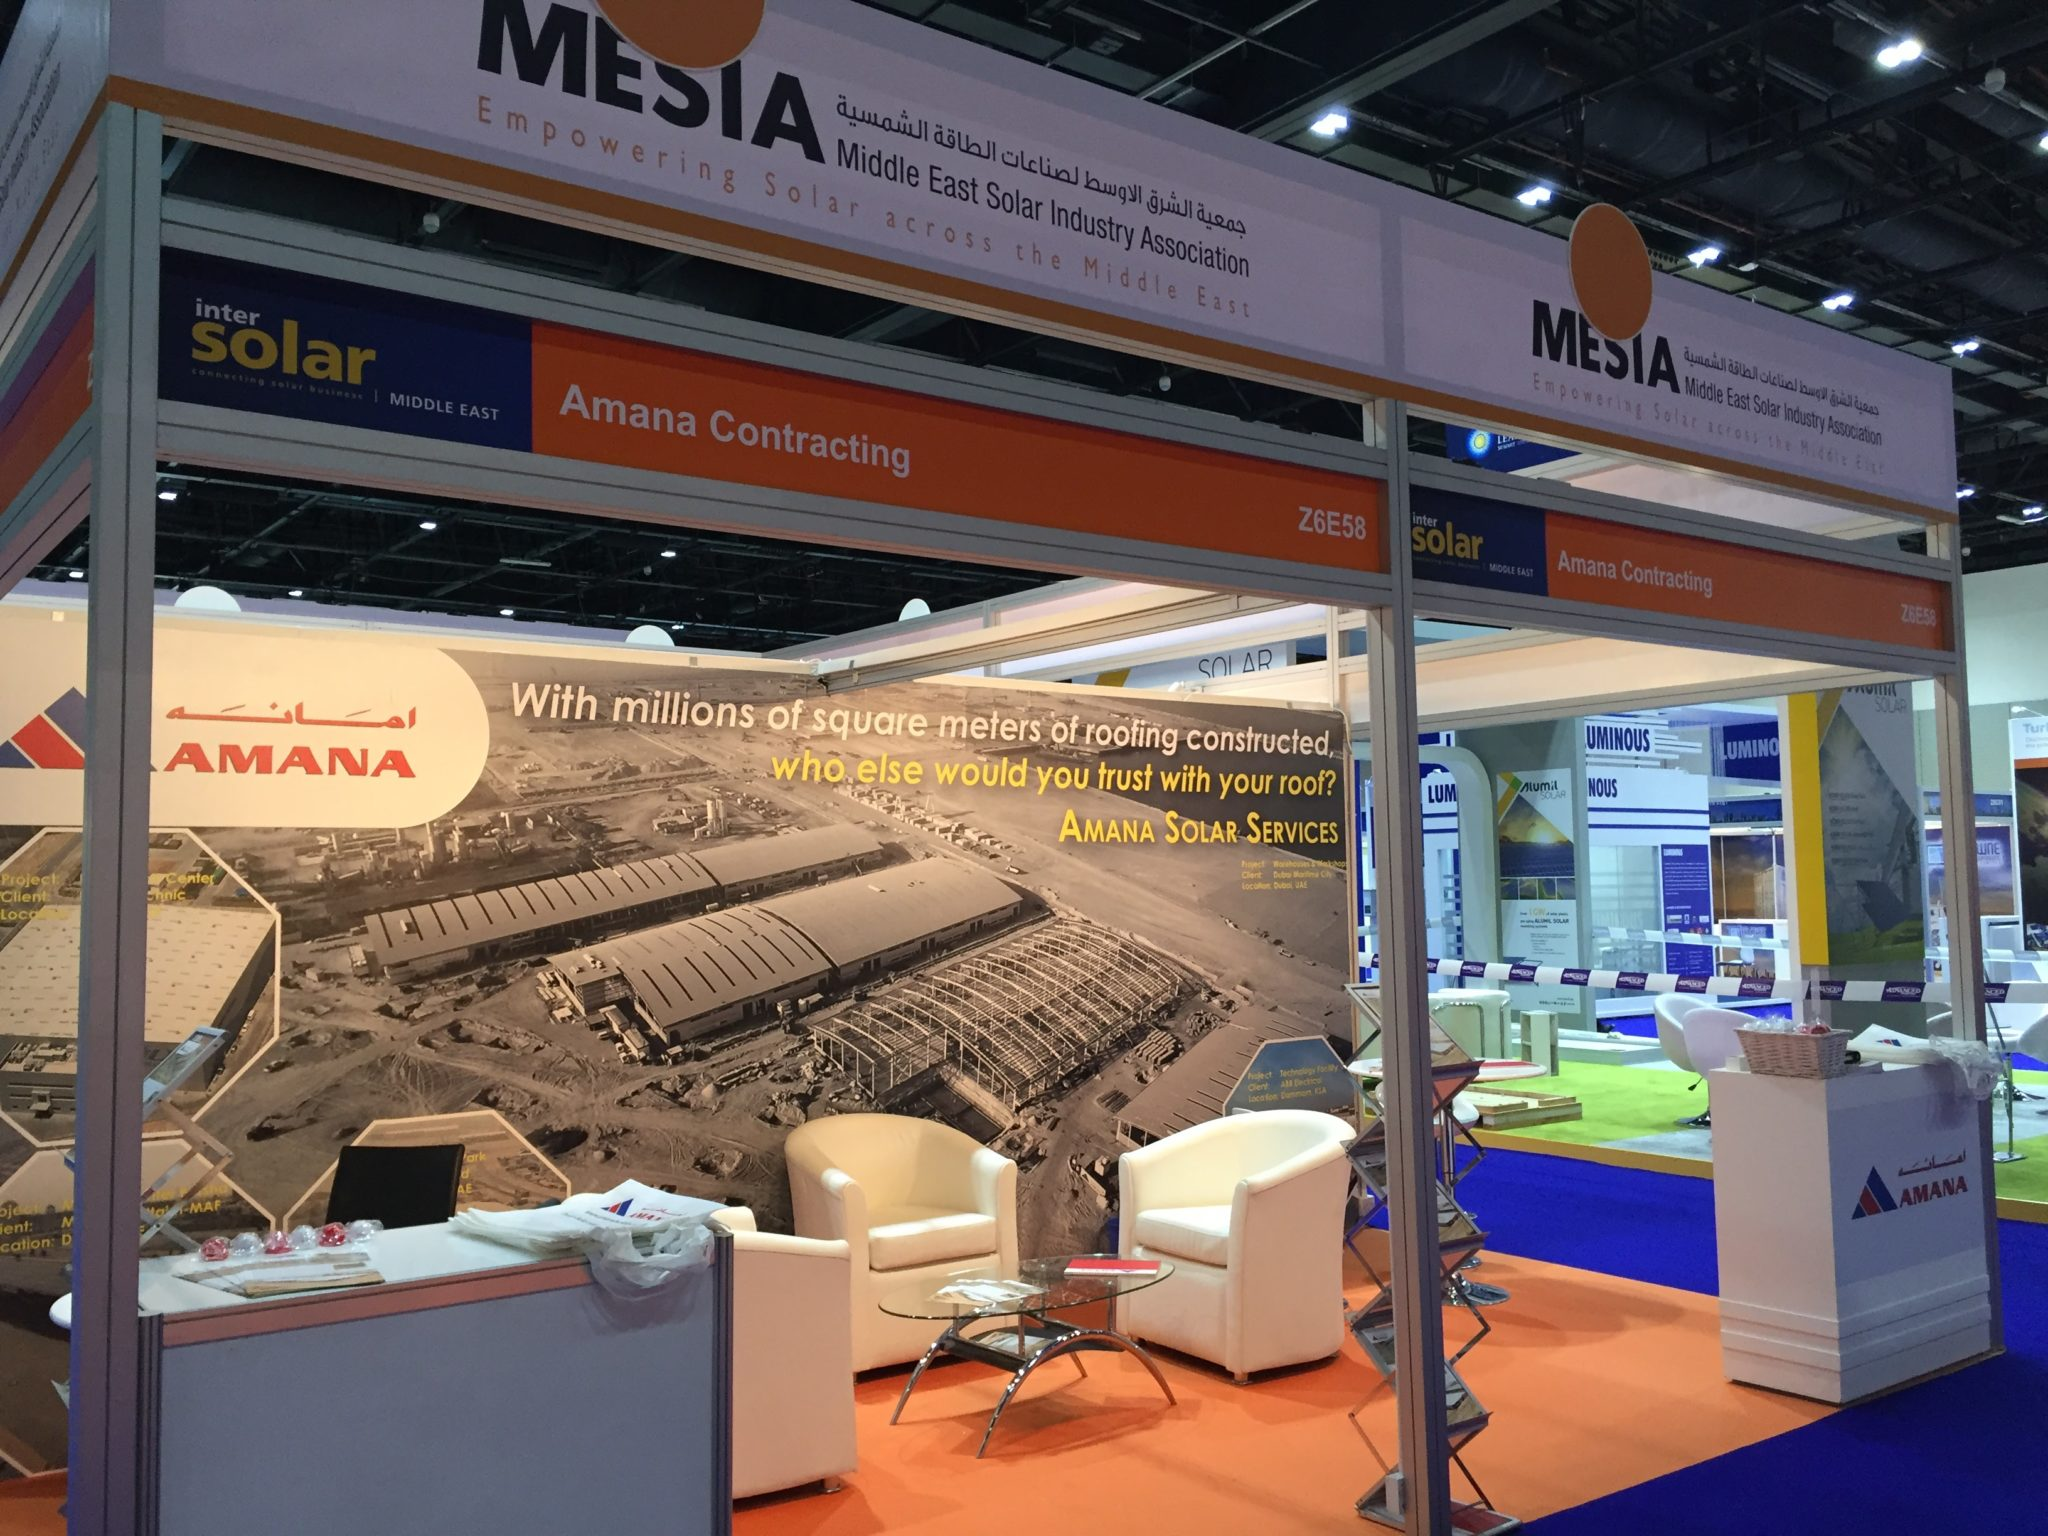 Amana Stand at Intersolar Middle East